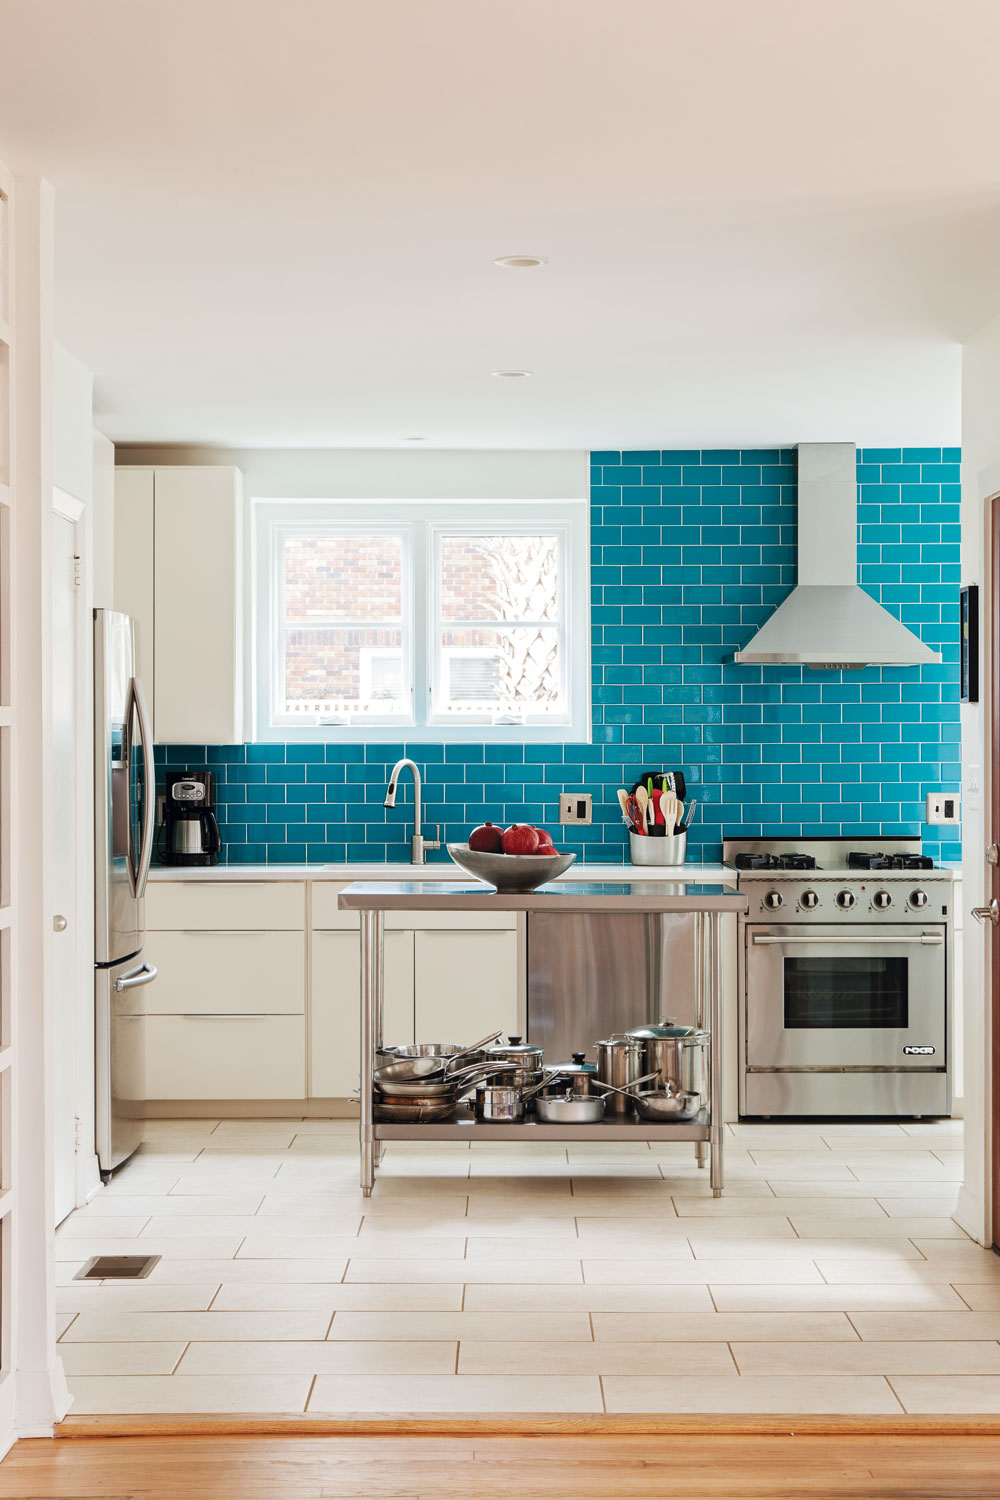 """""""COAT"""" d'AZUR: A wall of bright blue subway tile delivers a splash of color to the modernized kitchen, with new stainless steel appliances, custom cabinets, and Daltile countertops."""